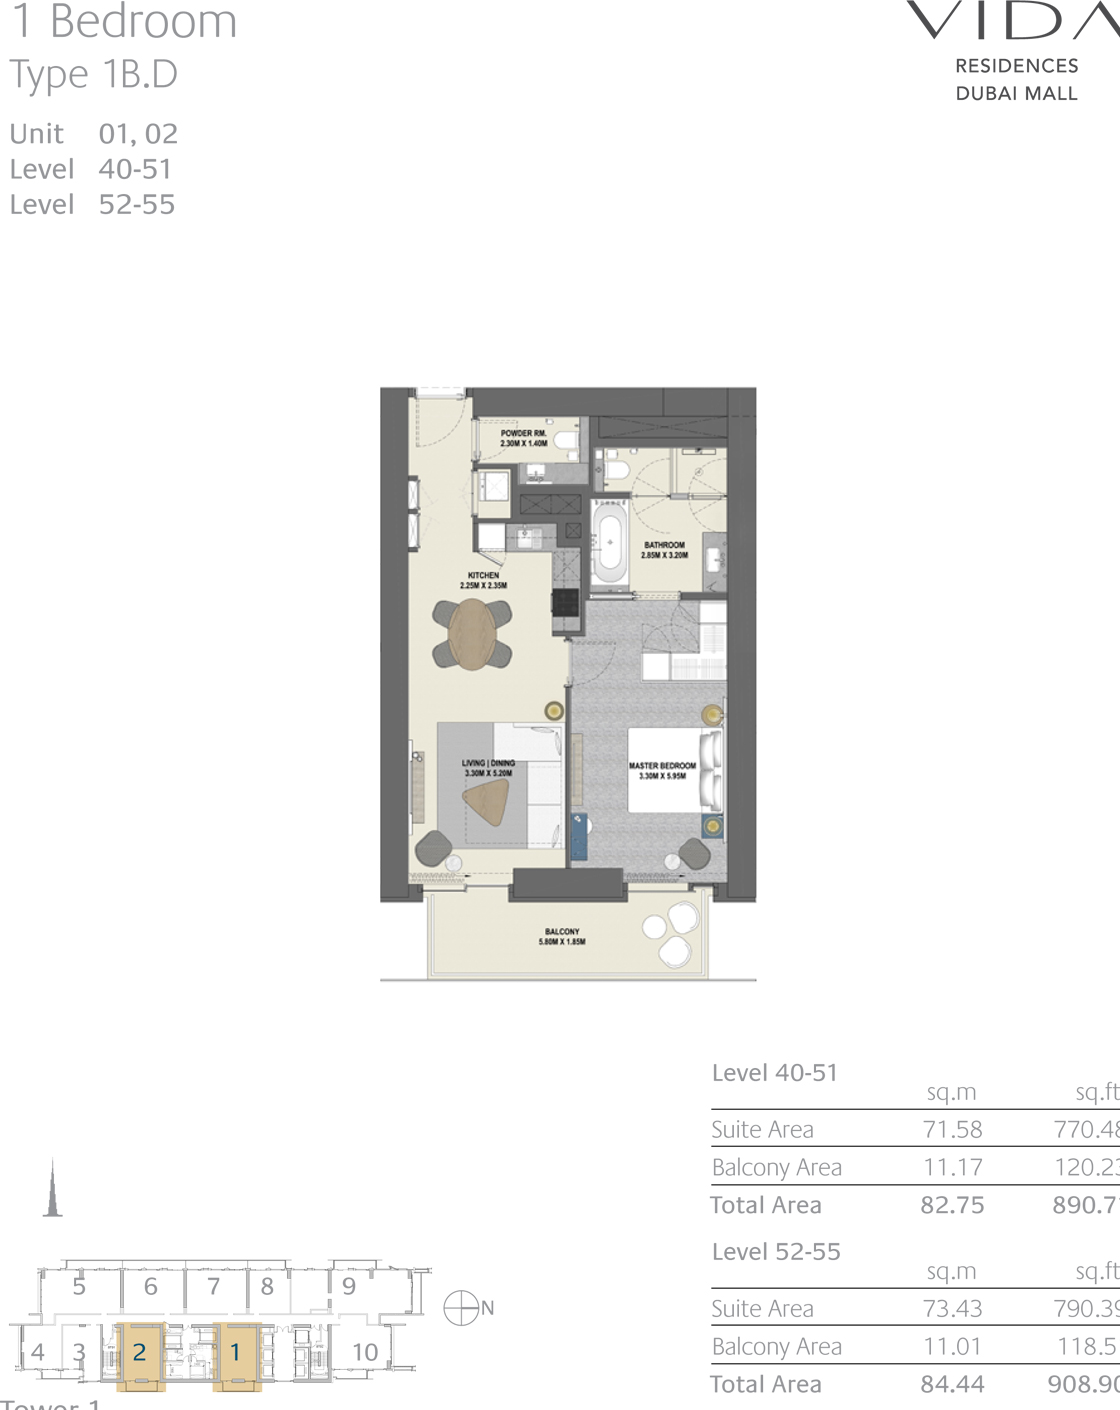 1 Bedroom Type 1B.D Unit 01,02 Level 40-51 Level 52-55